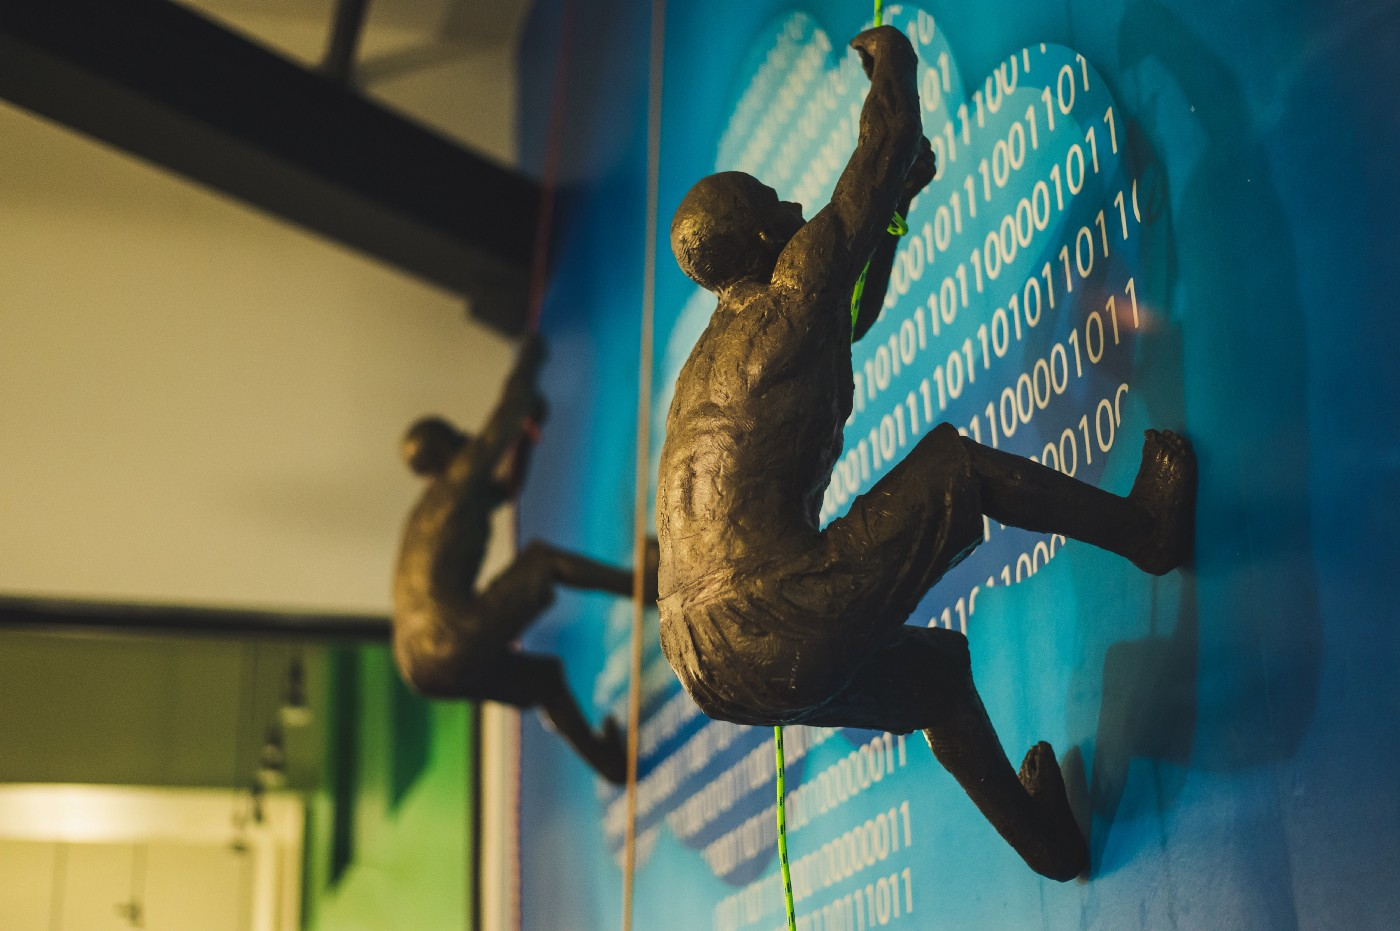 Two bronze figurine men climbing a wall with binary code printed on it.